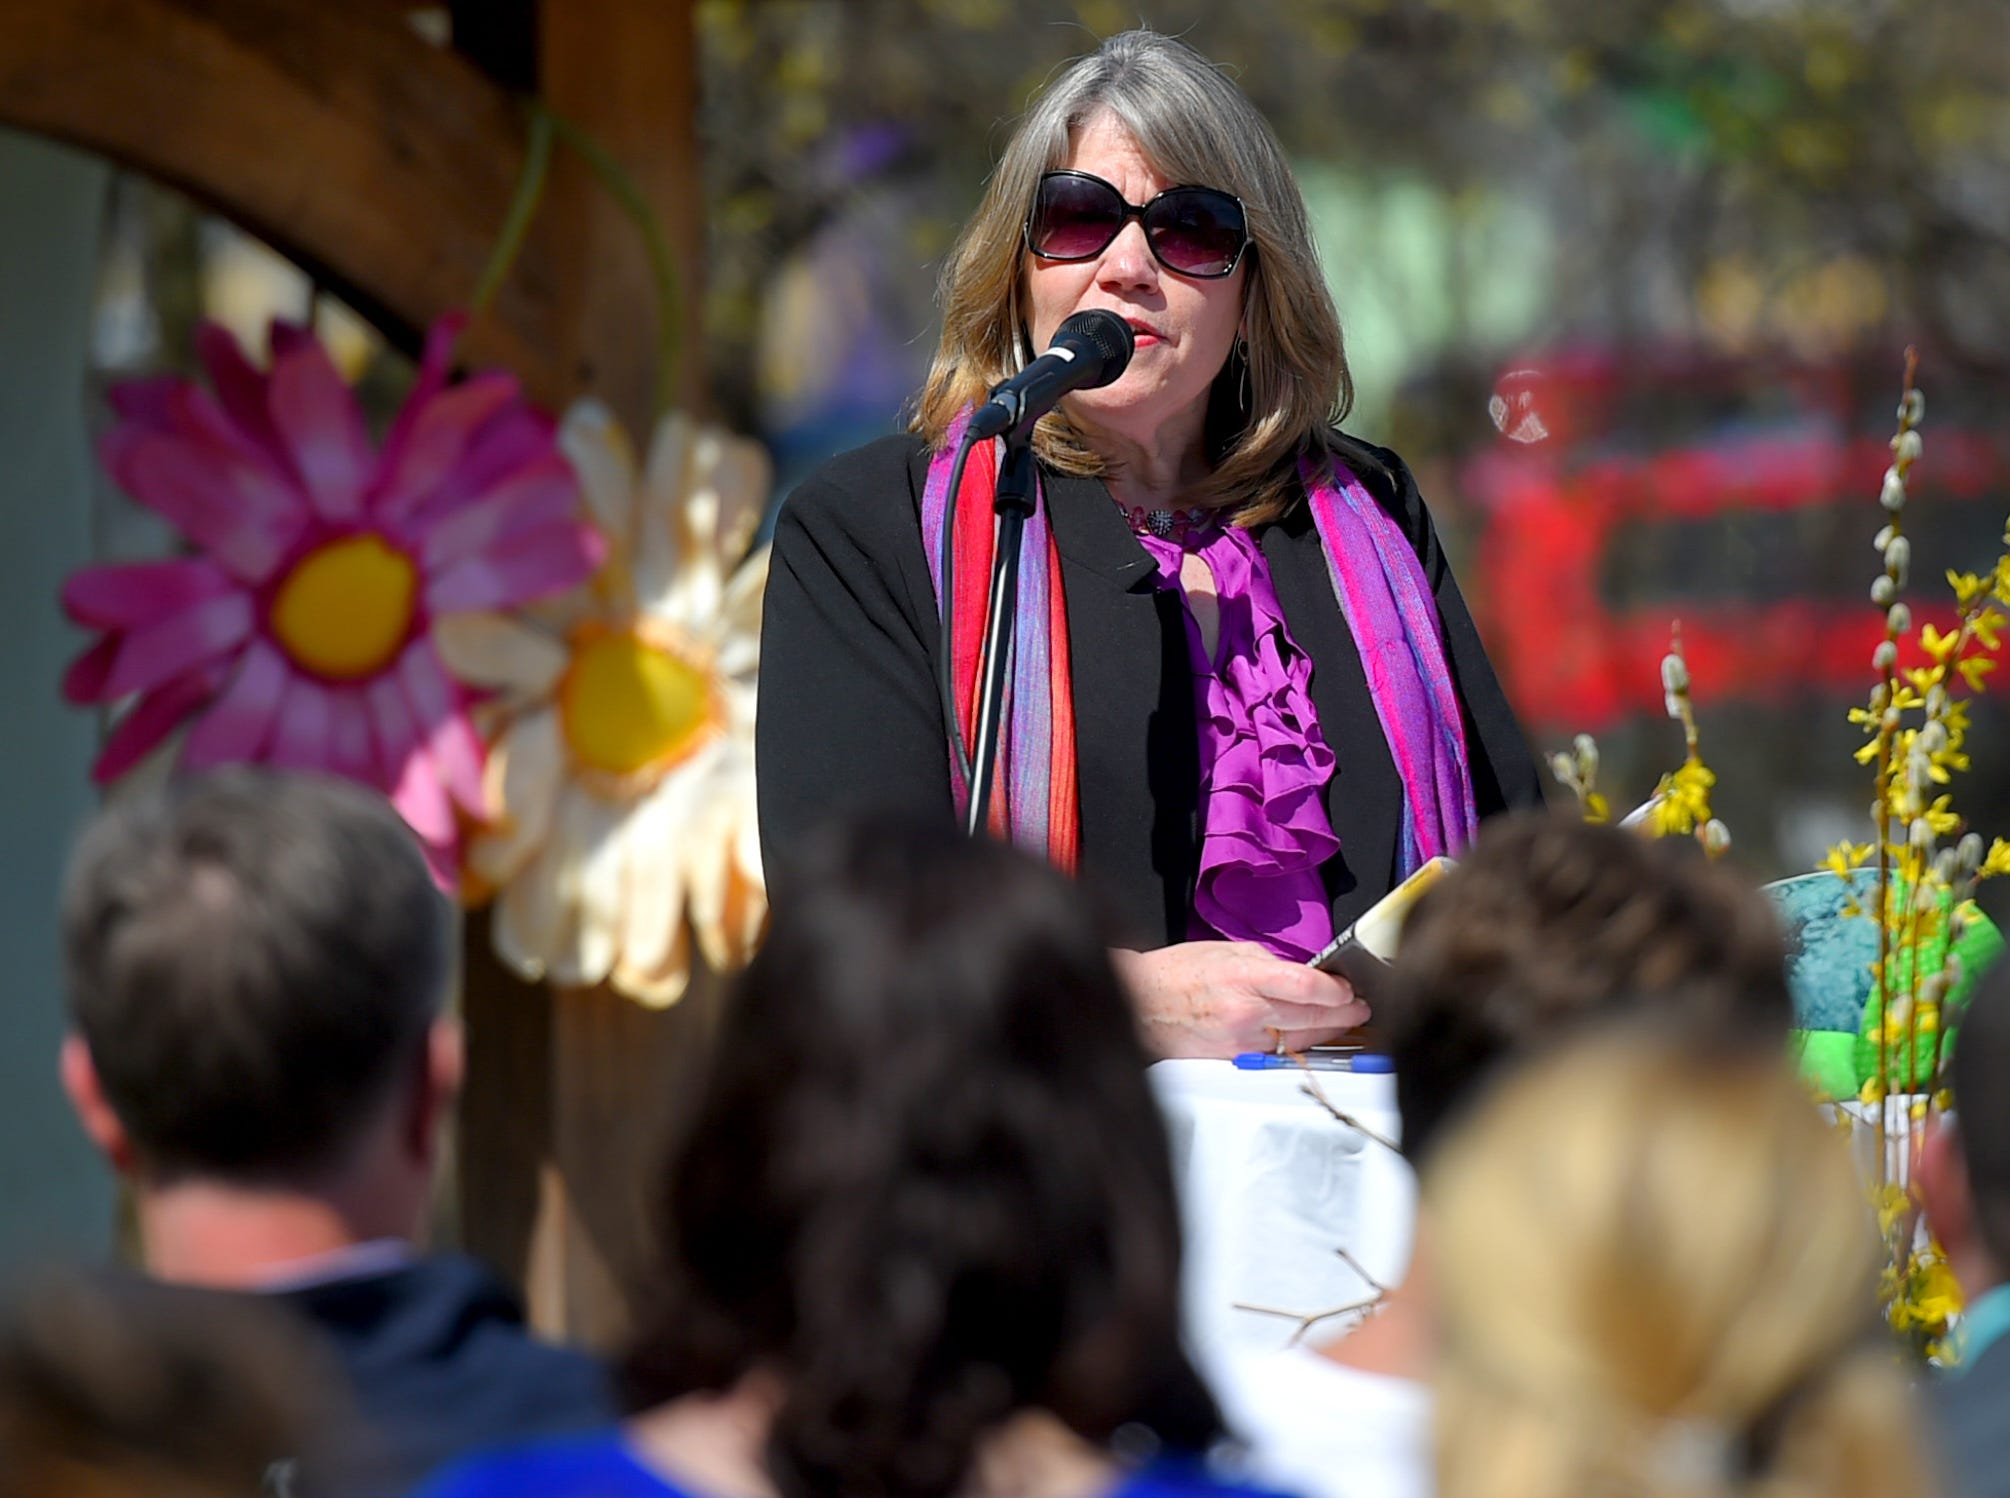 Brigid Hubberman, friend and colleague of Kathleen Downes, speaks at the celebration of life honoring Downes, held at the Ithaca Children's Garden on April 17, 2019.